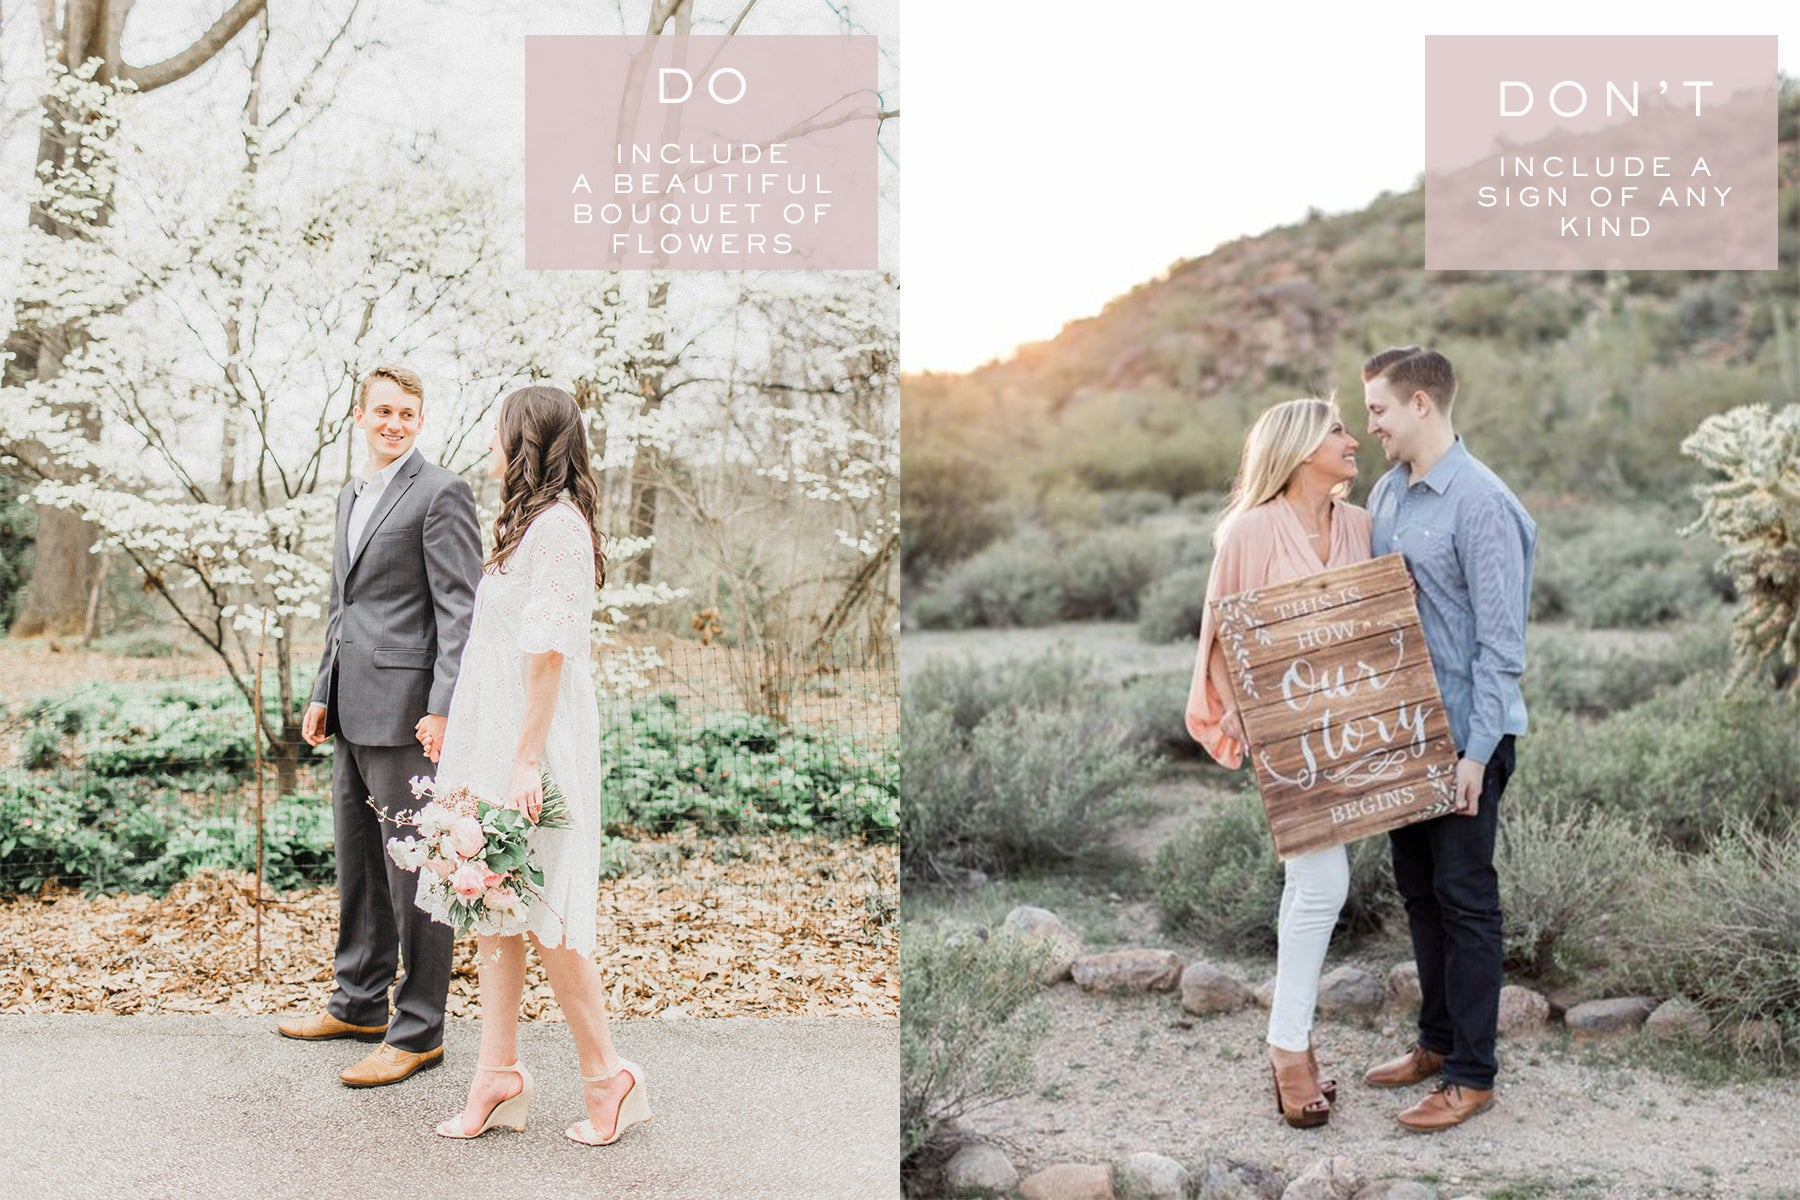 Engagement Photo Props | Engagement Photo Tips | Eternal Ivory